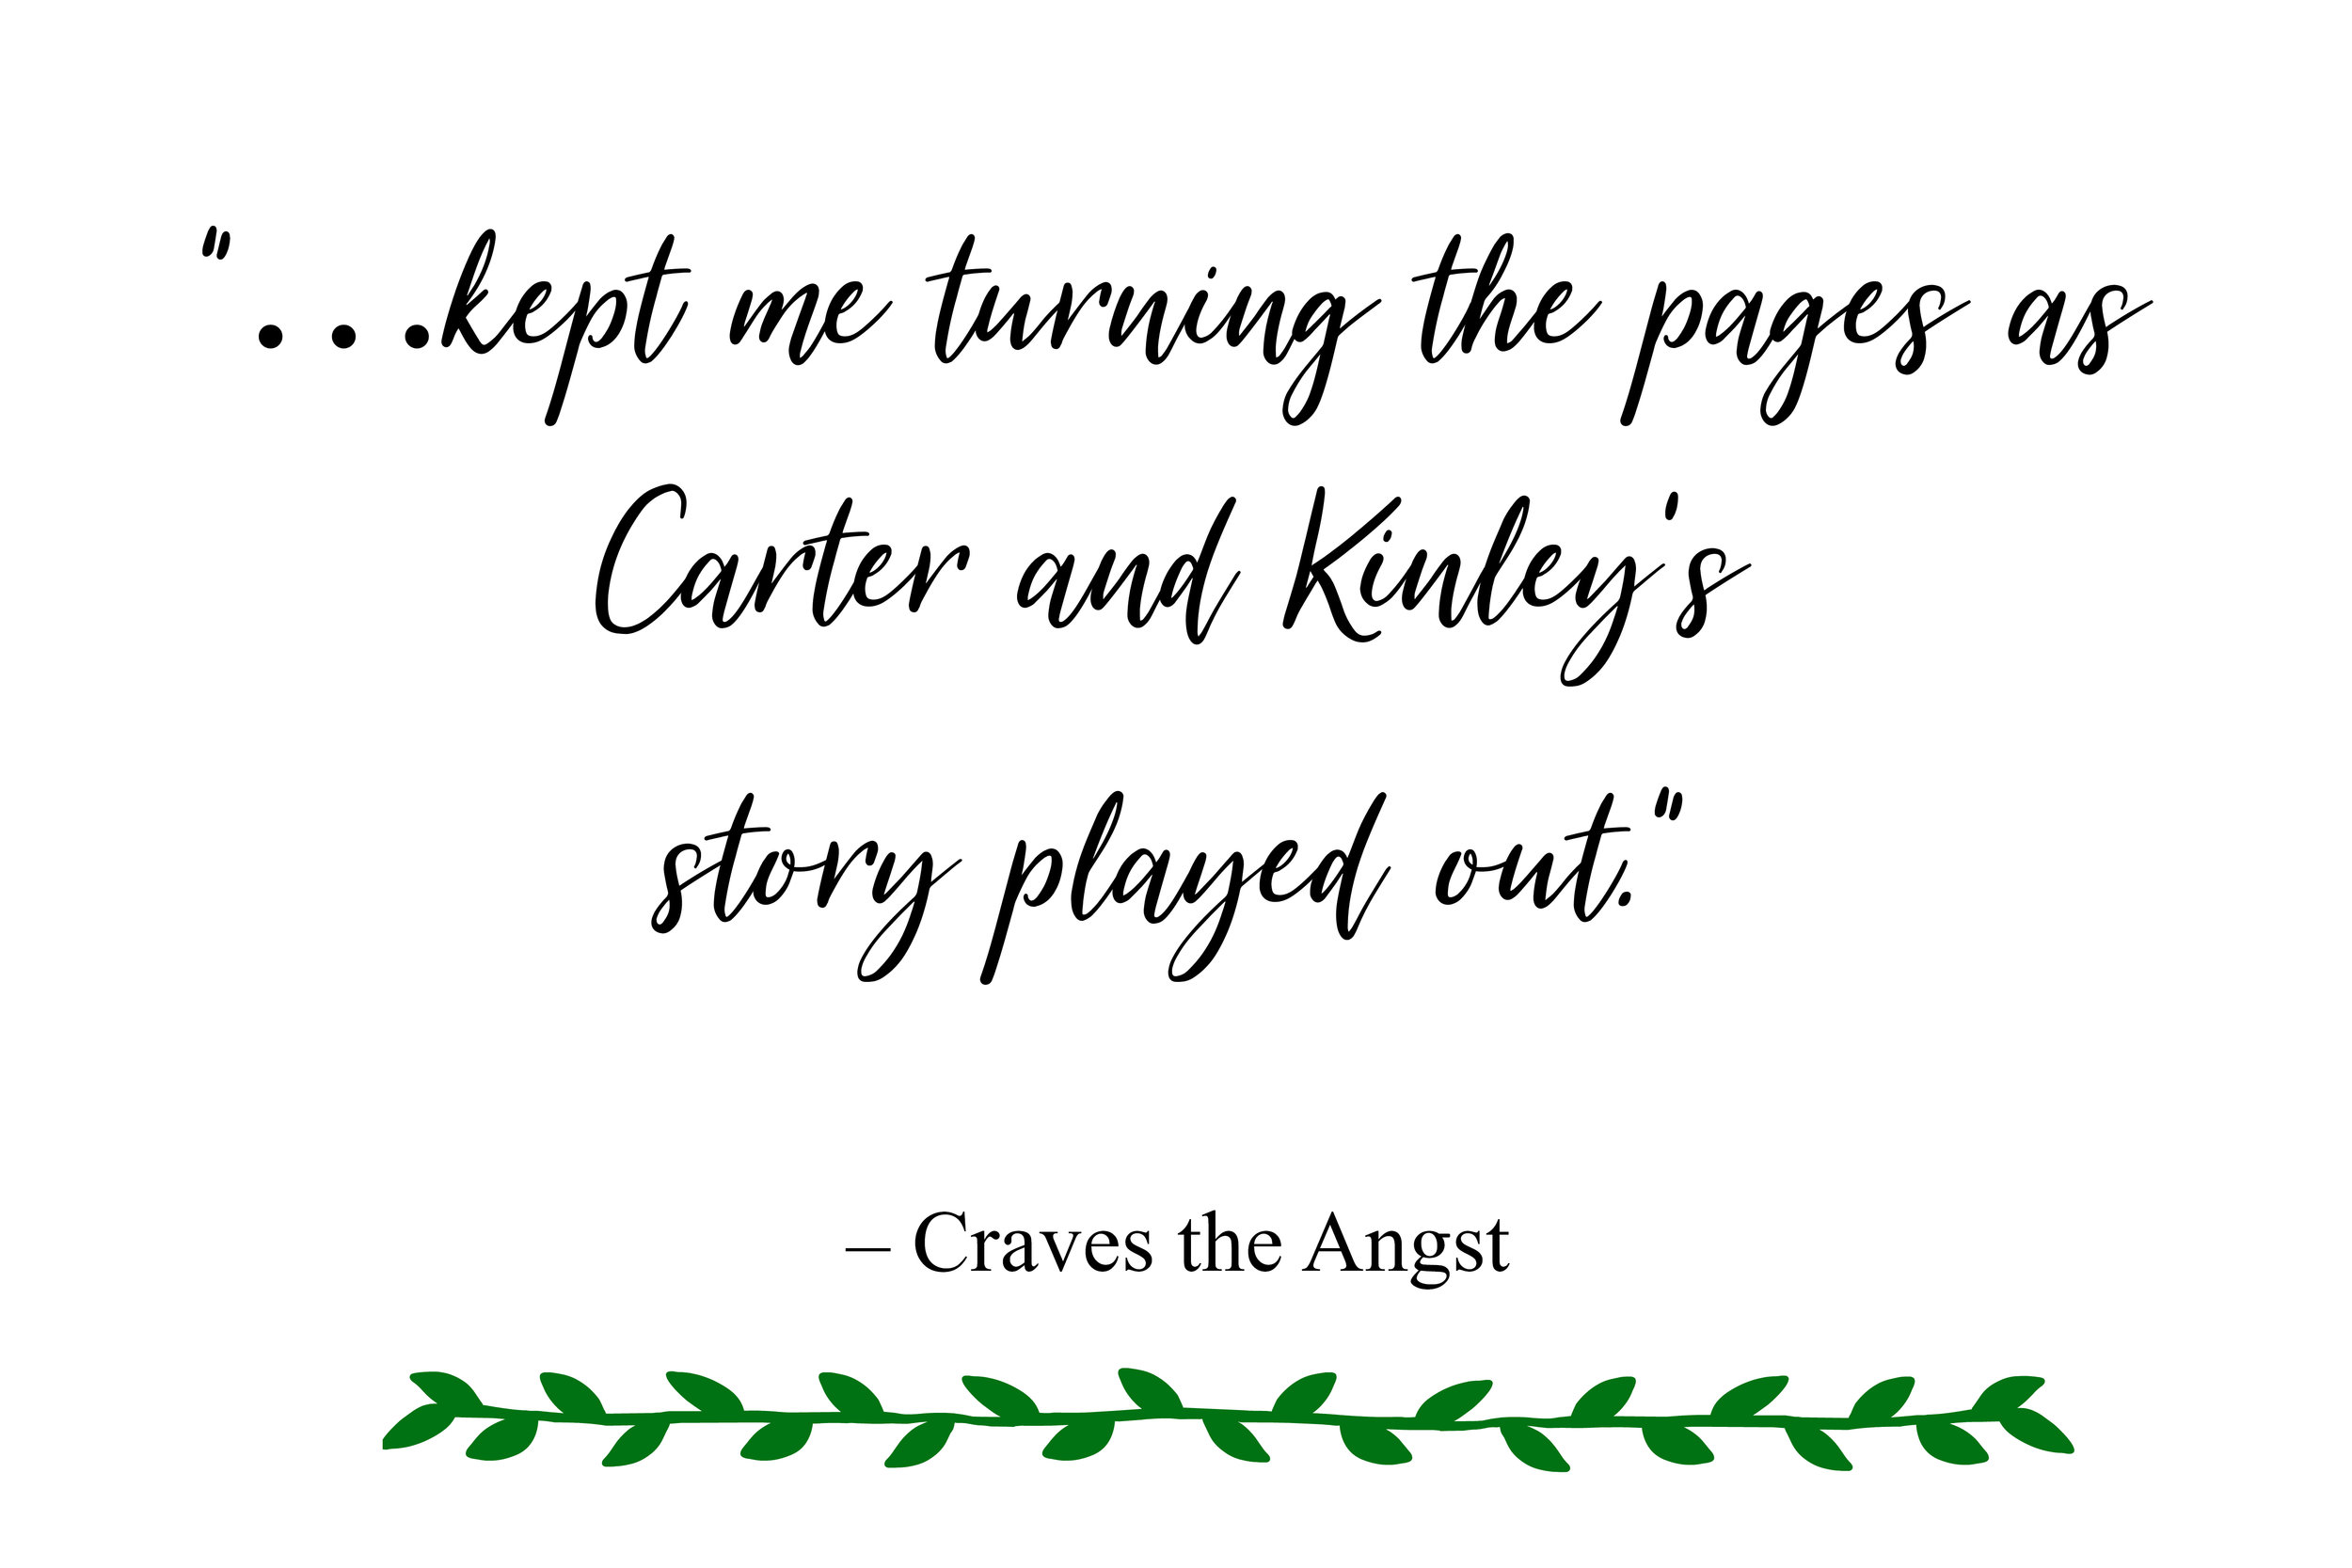 """…kept me turning the pages as Carter and Kinley's story played out."" –Craves the Angst"